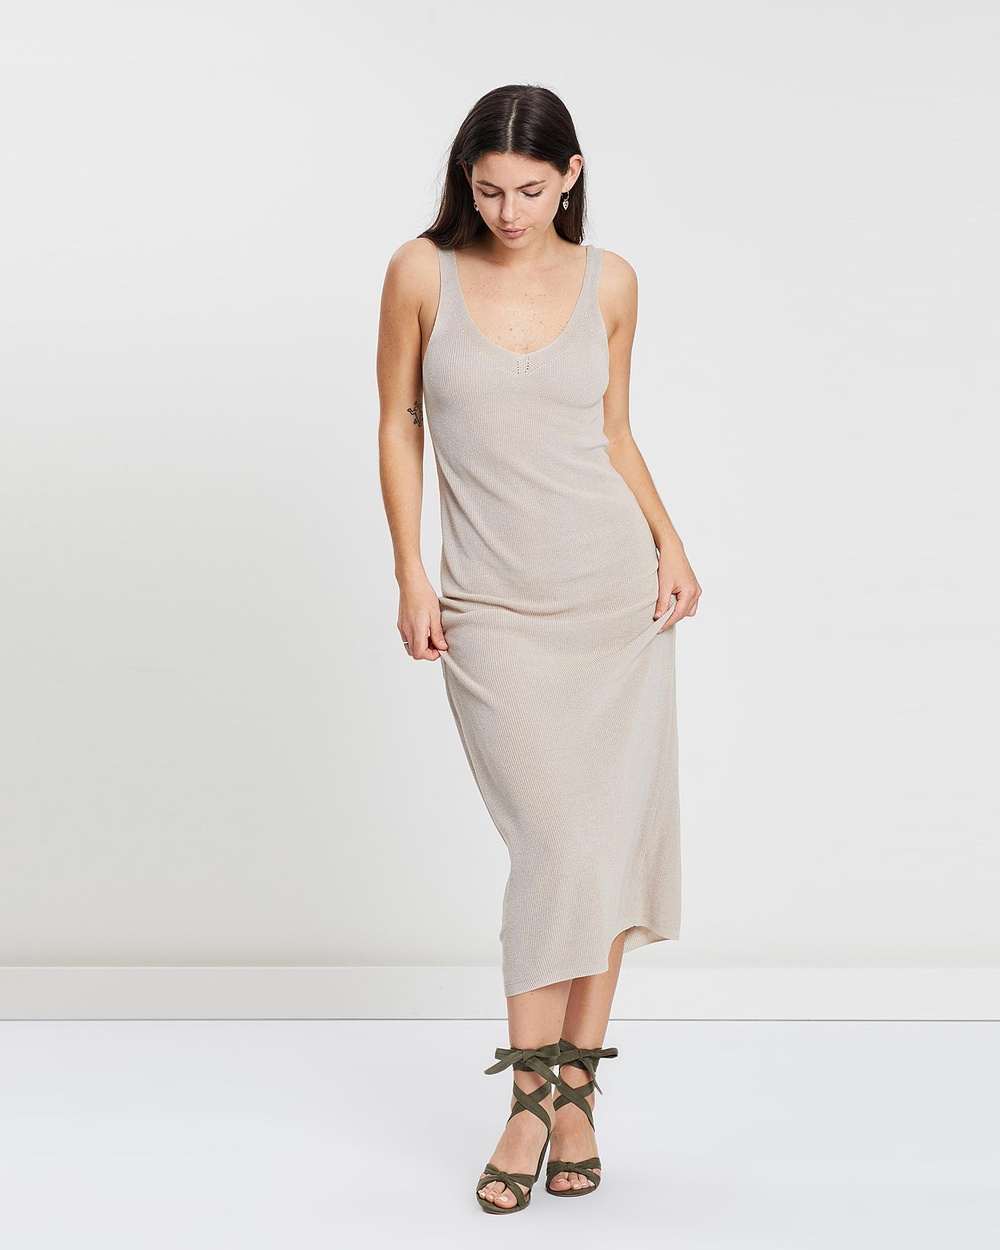 MESOP Sand Lily Pointelle Cami Dress